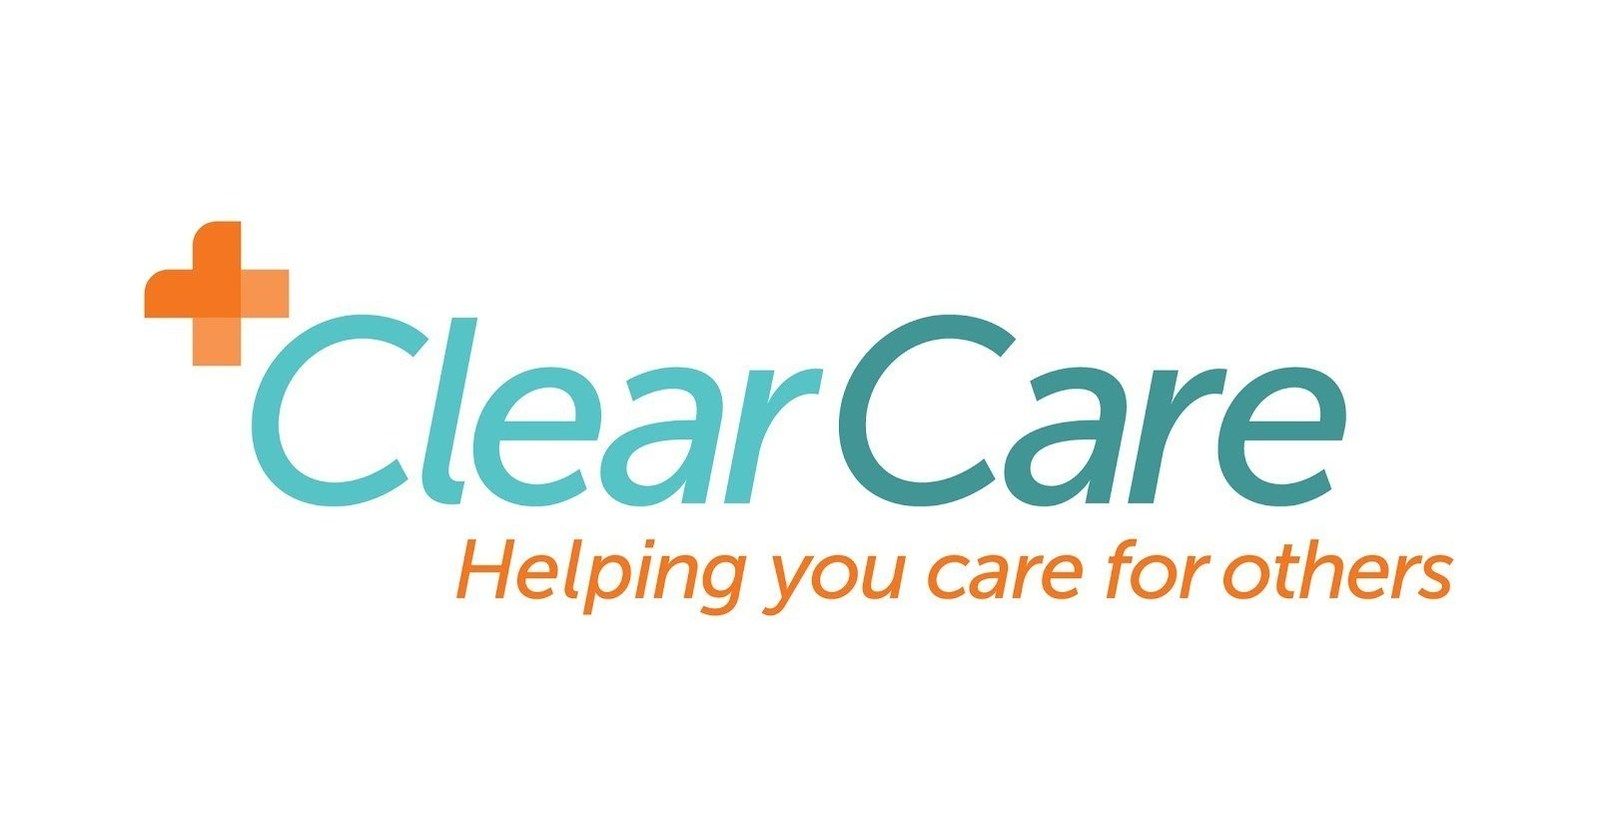 clearcare.com sign in